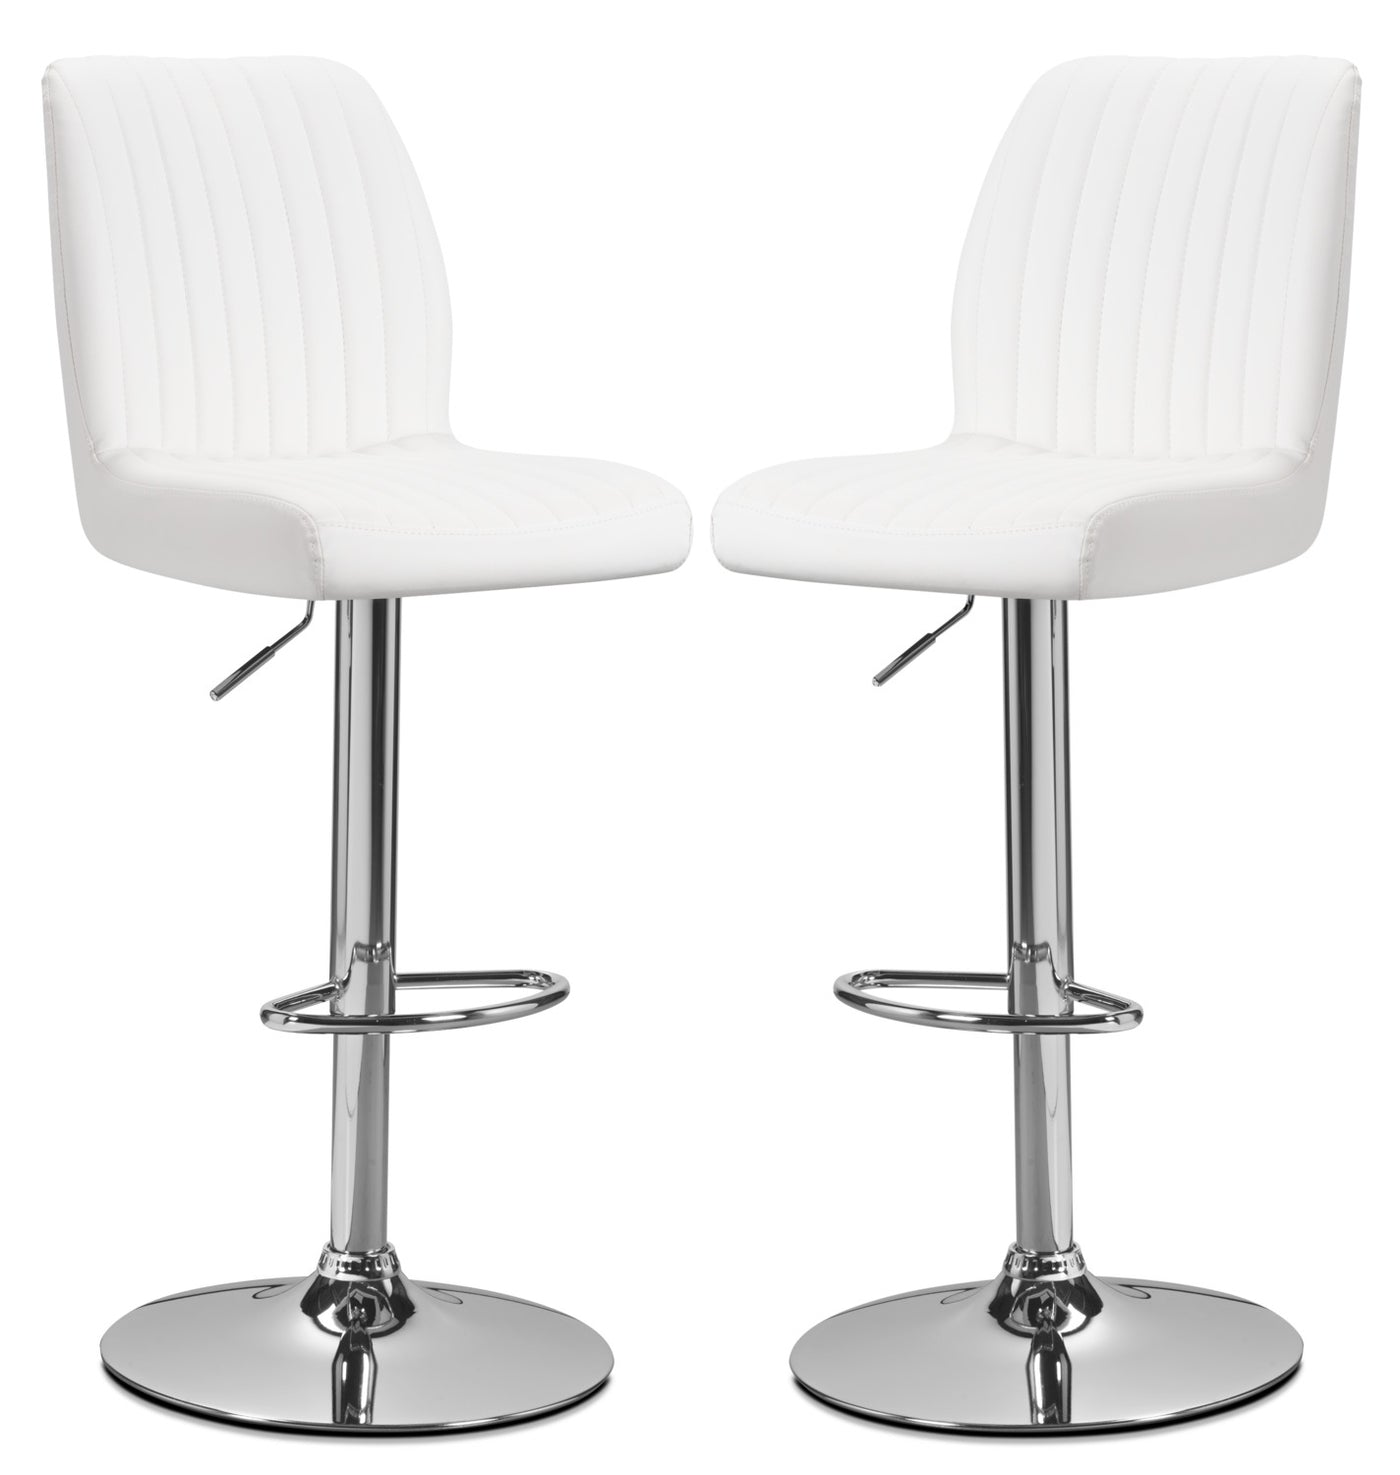 Magnificent Monarch Adjustable Bar Stool Set Of 2 White Gamerscity Chair Design For Home Gamerscityorg